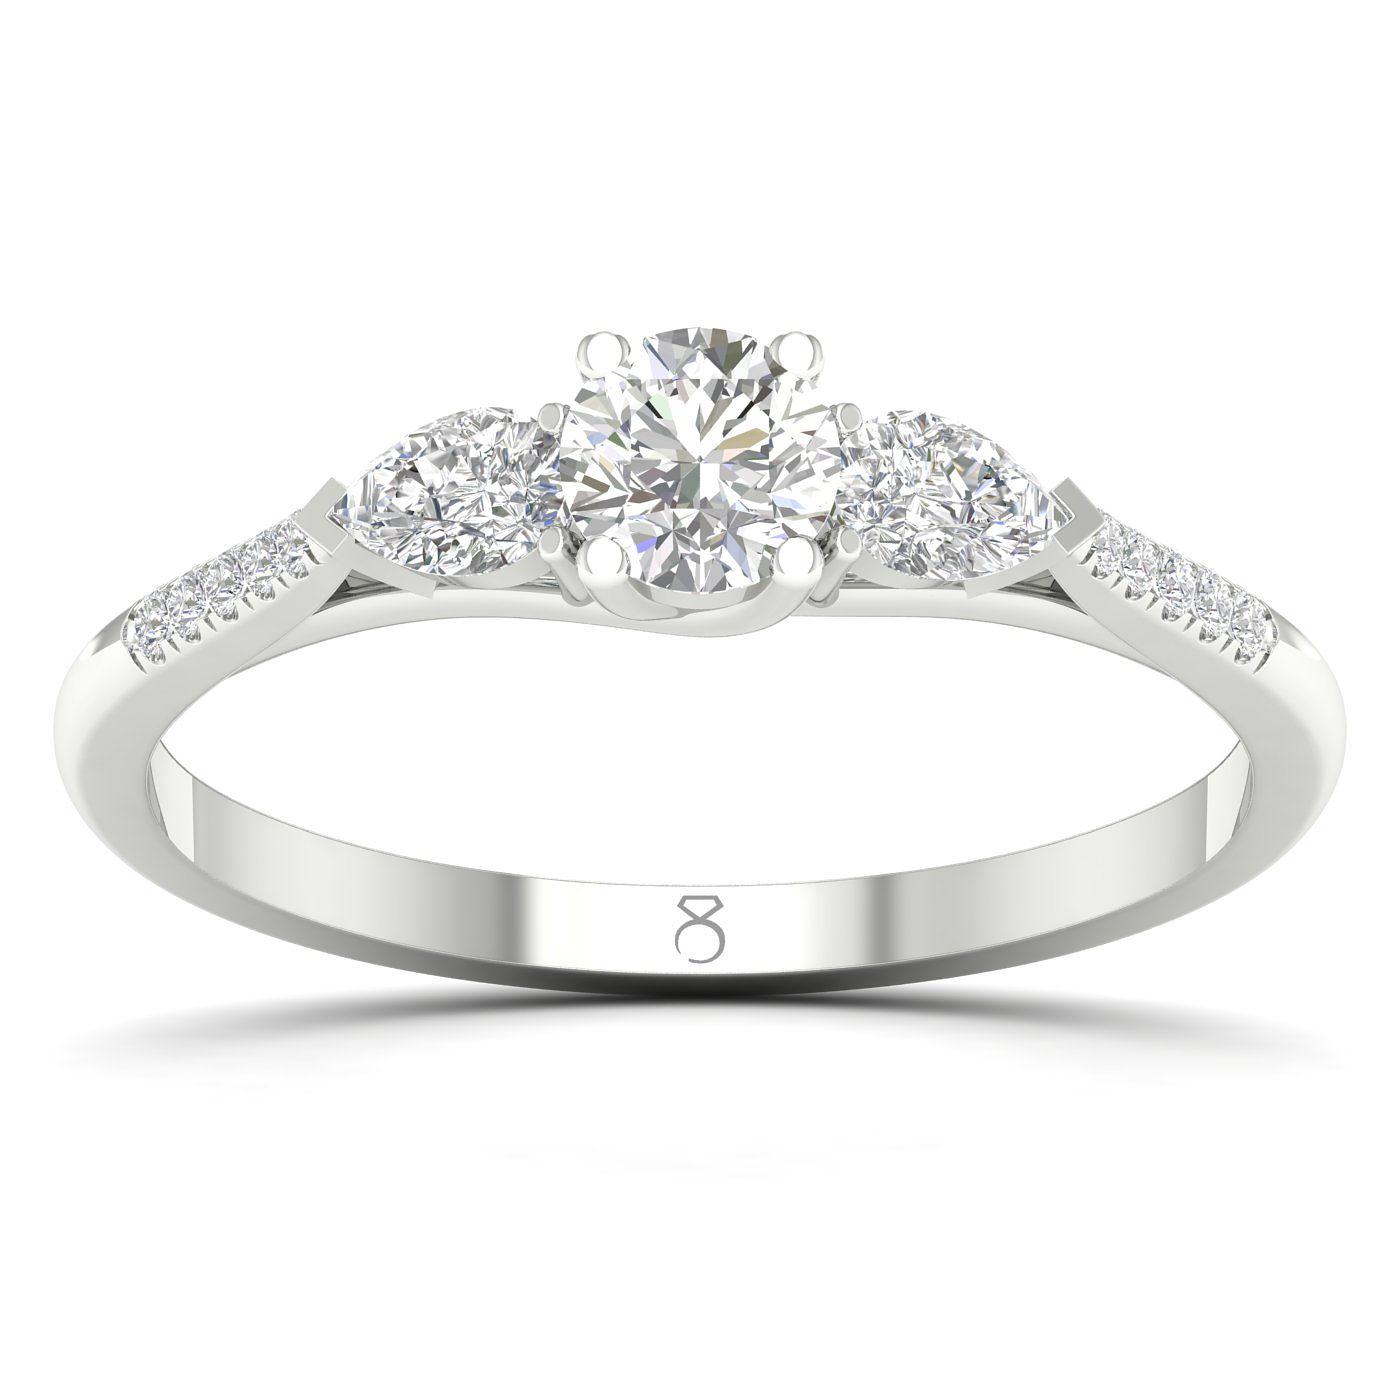 The Diamond Story 18ct White Gold 3/4ct Diamond Ring - Product number 2495945